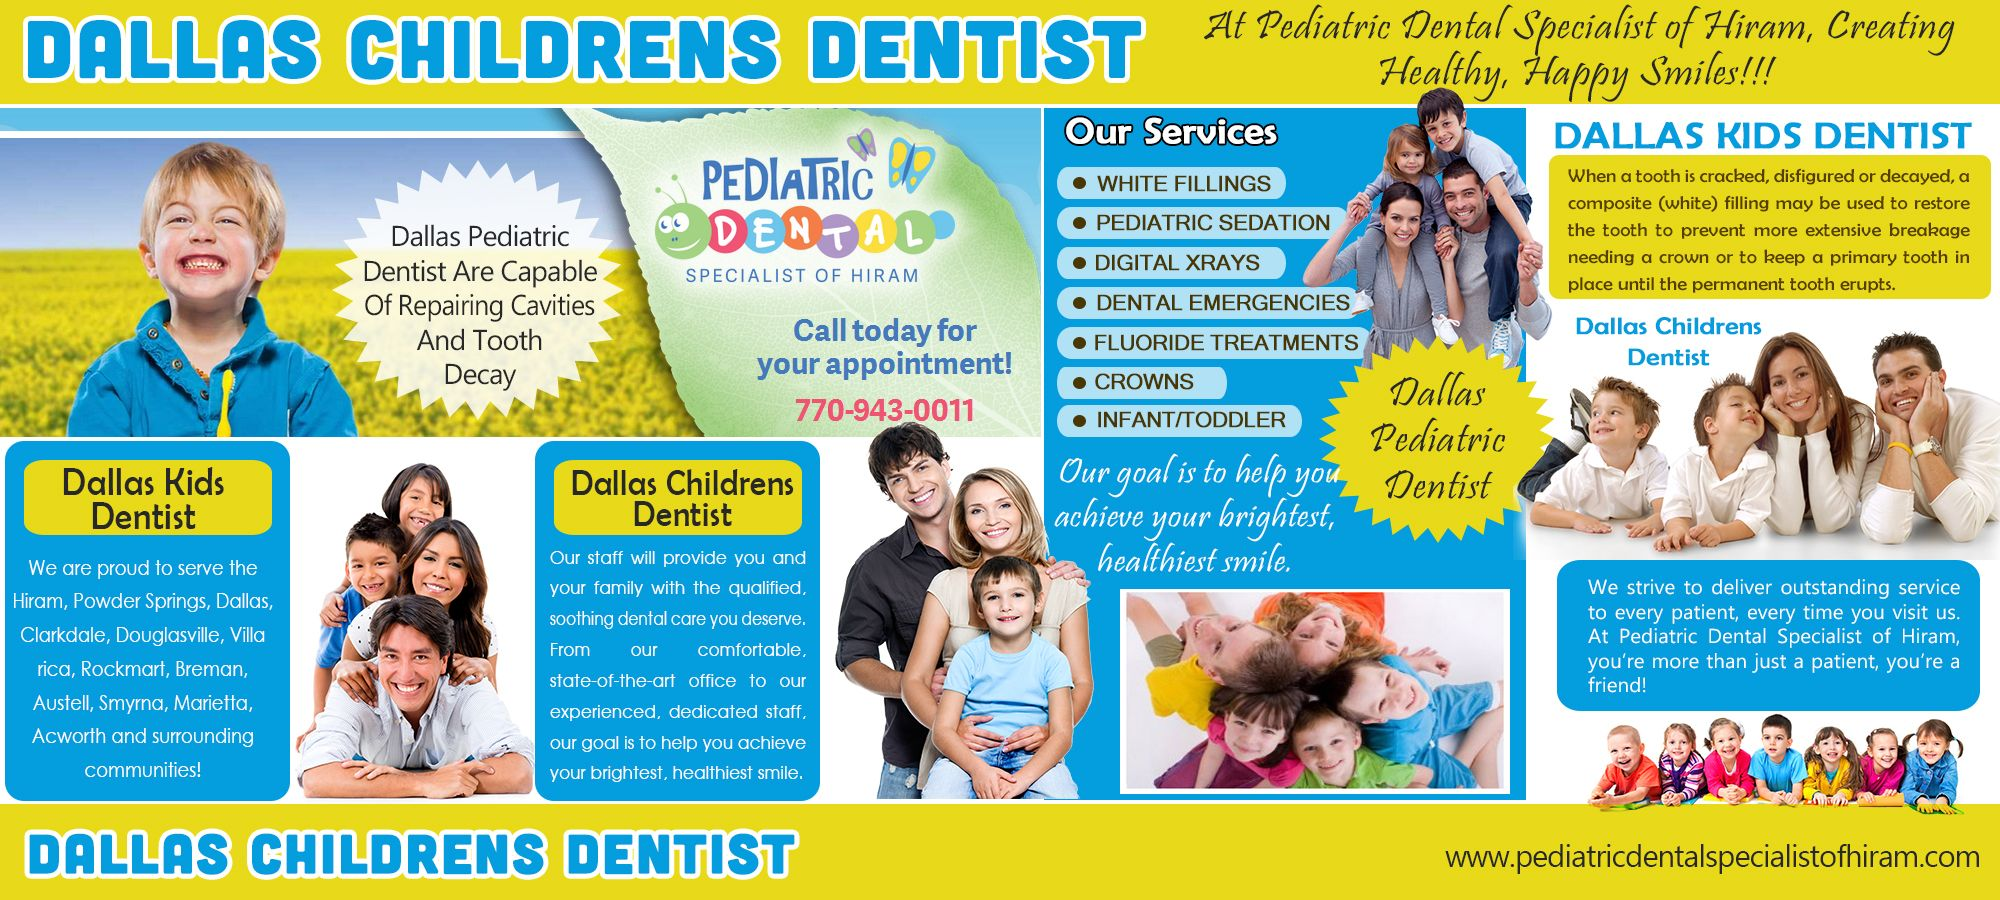 Check Out The Website http://pediatricdentalspecialistofhiram.com/dallas-pediatric-dentist/ for more information on Dallas Pediatric Dentist. A Dallas Pediatric Dentist sees only children. Some service patients ages birth to eighteen while some prefer to focus on the life and lime of primary teeth only.  Follow Us : http://www.showmelocal.com/profile.aspx?bid=18808836